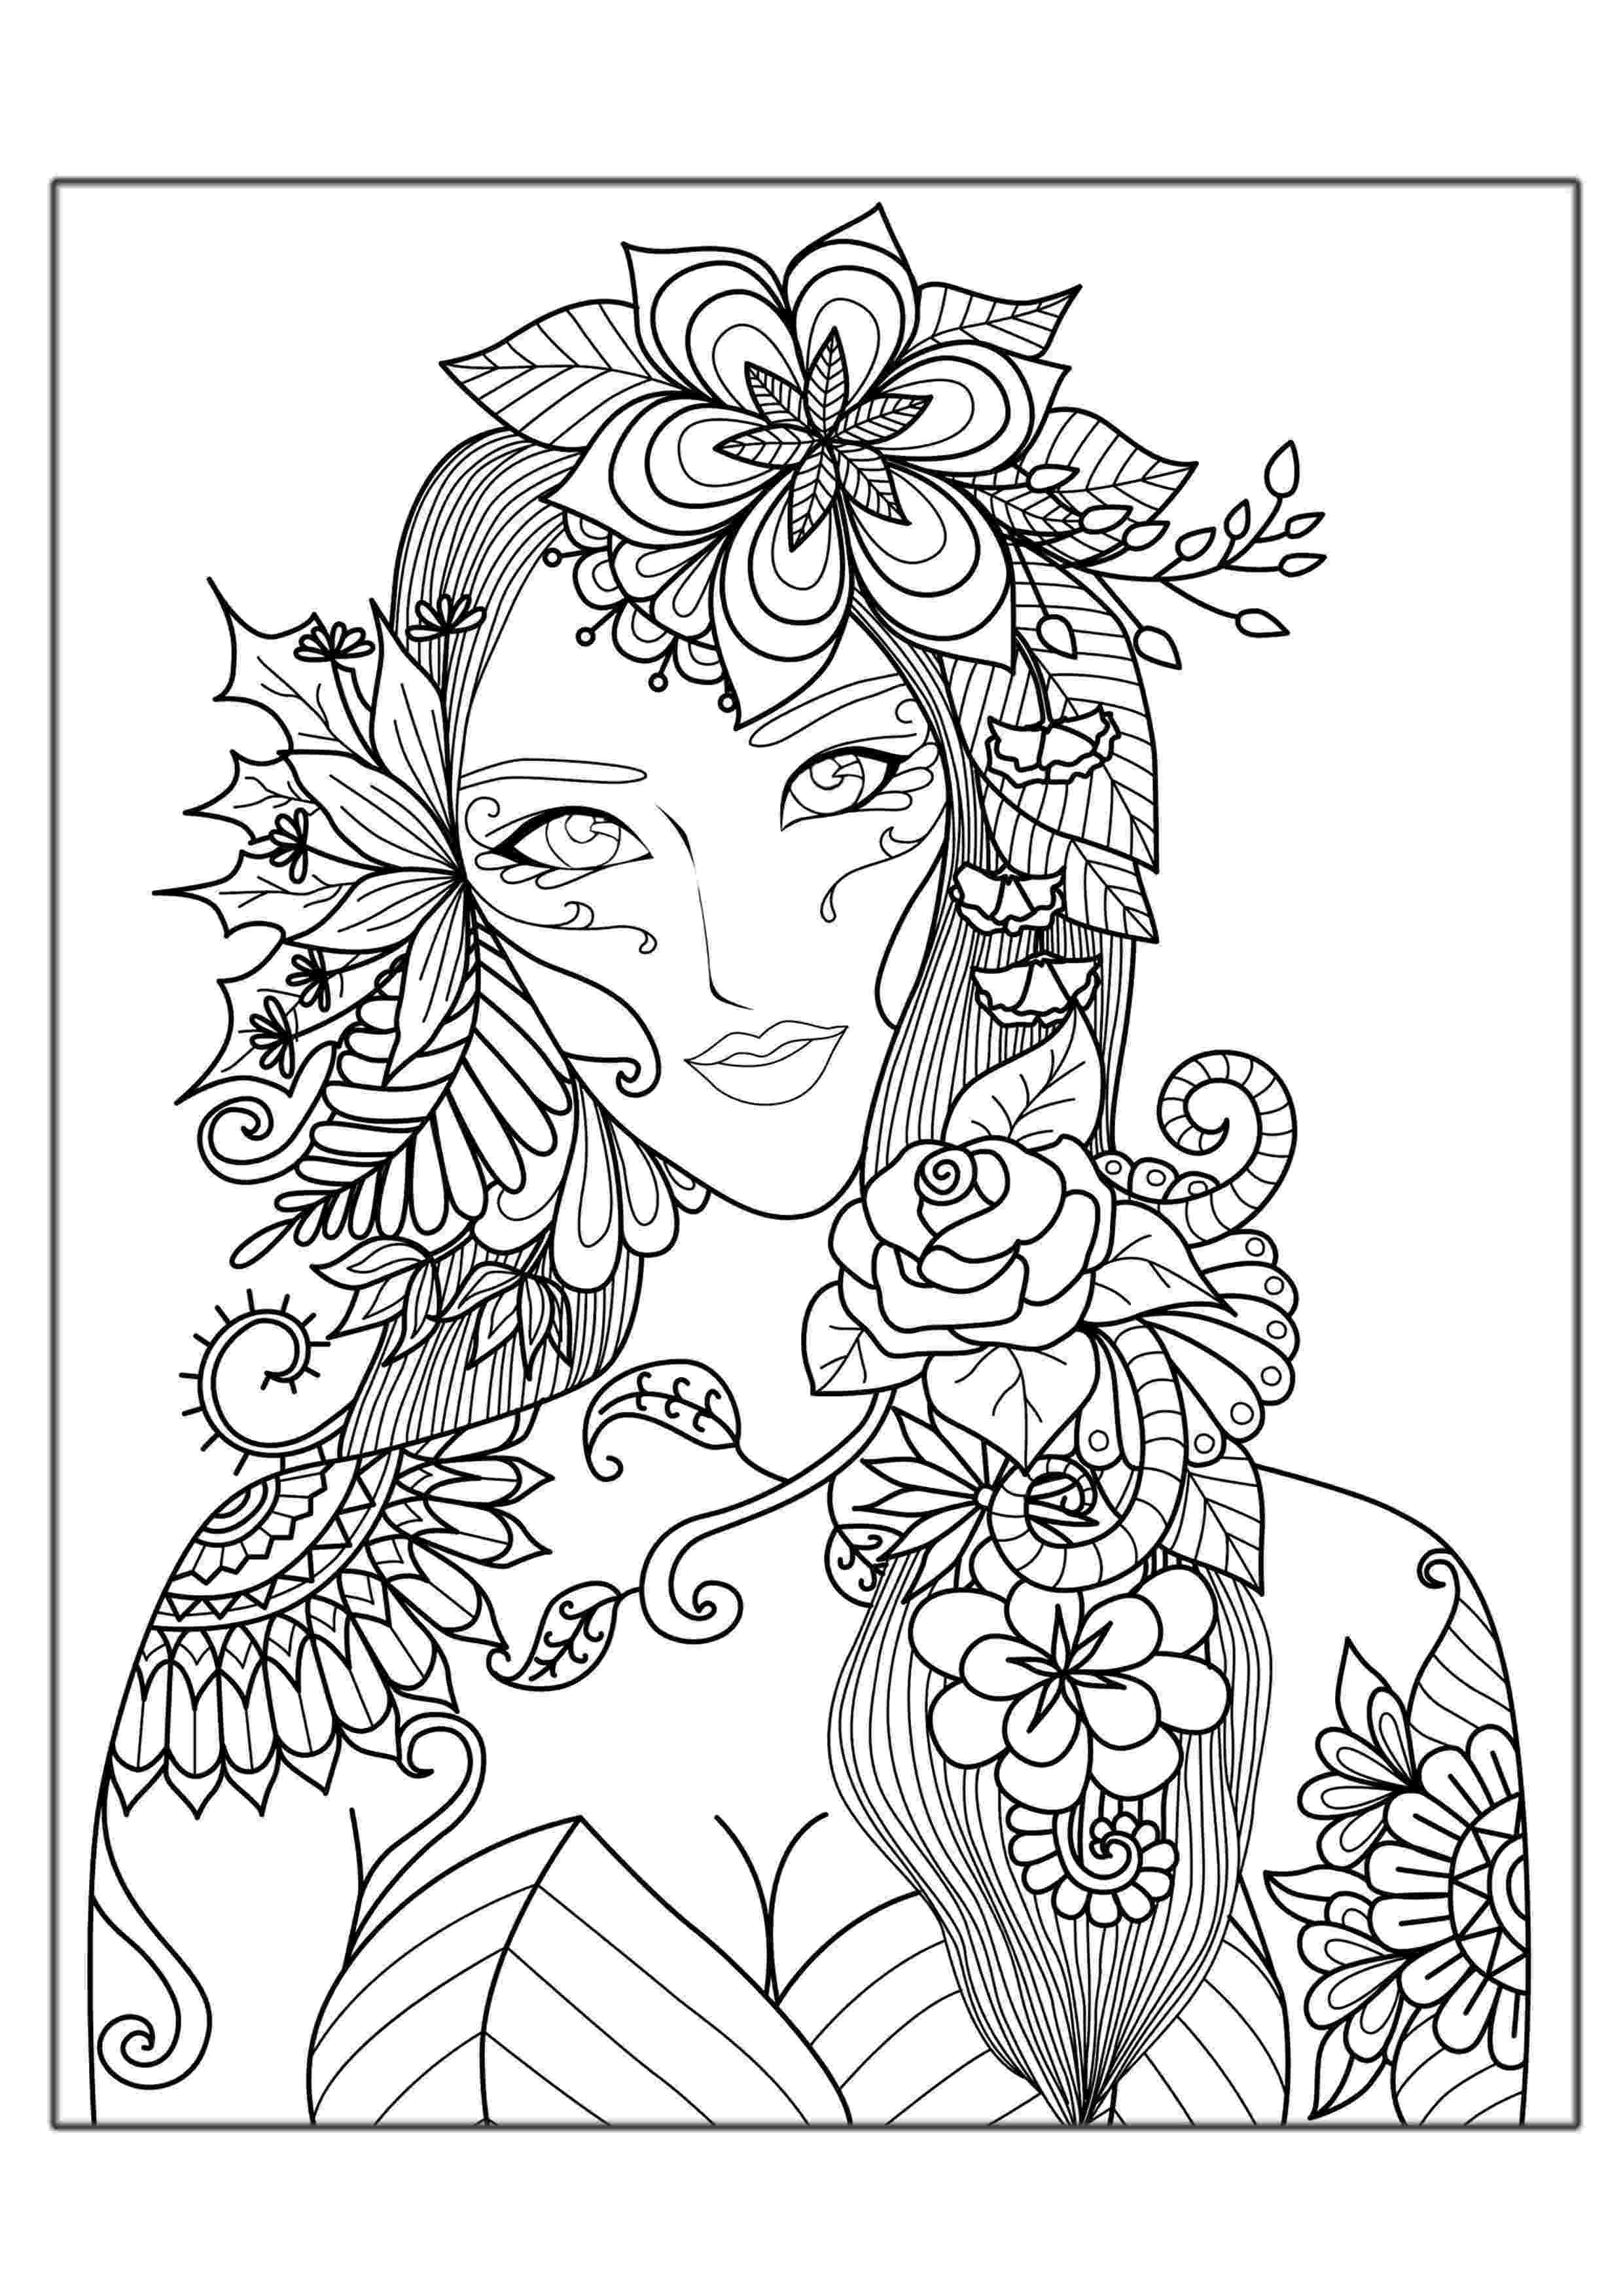 hard coloring page coloring pages difficult but fun coloring pages free and coloring page hard